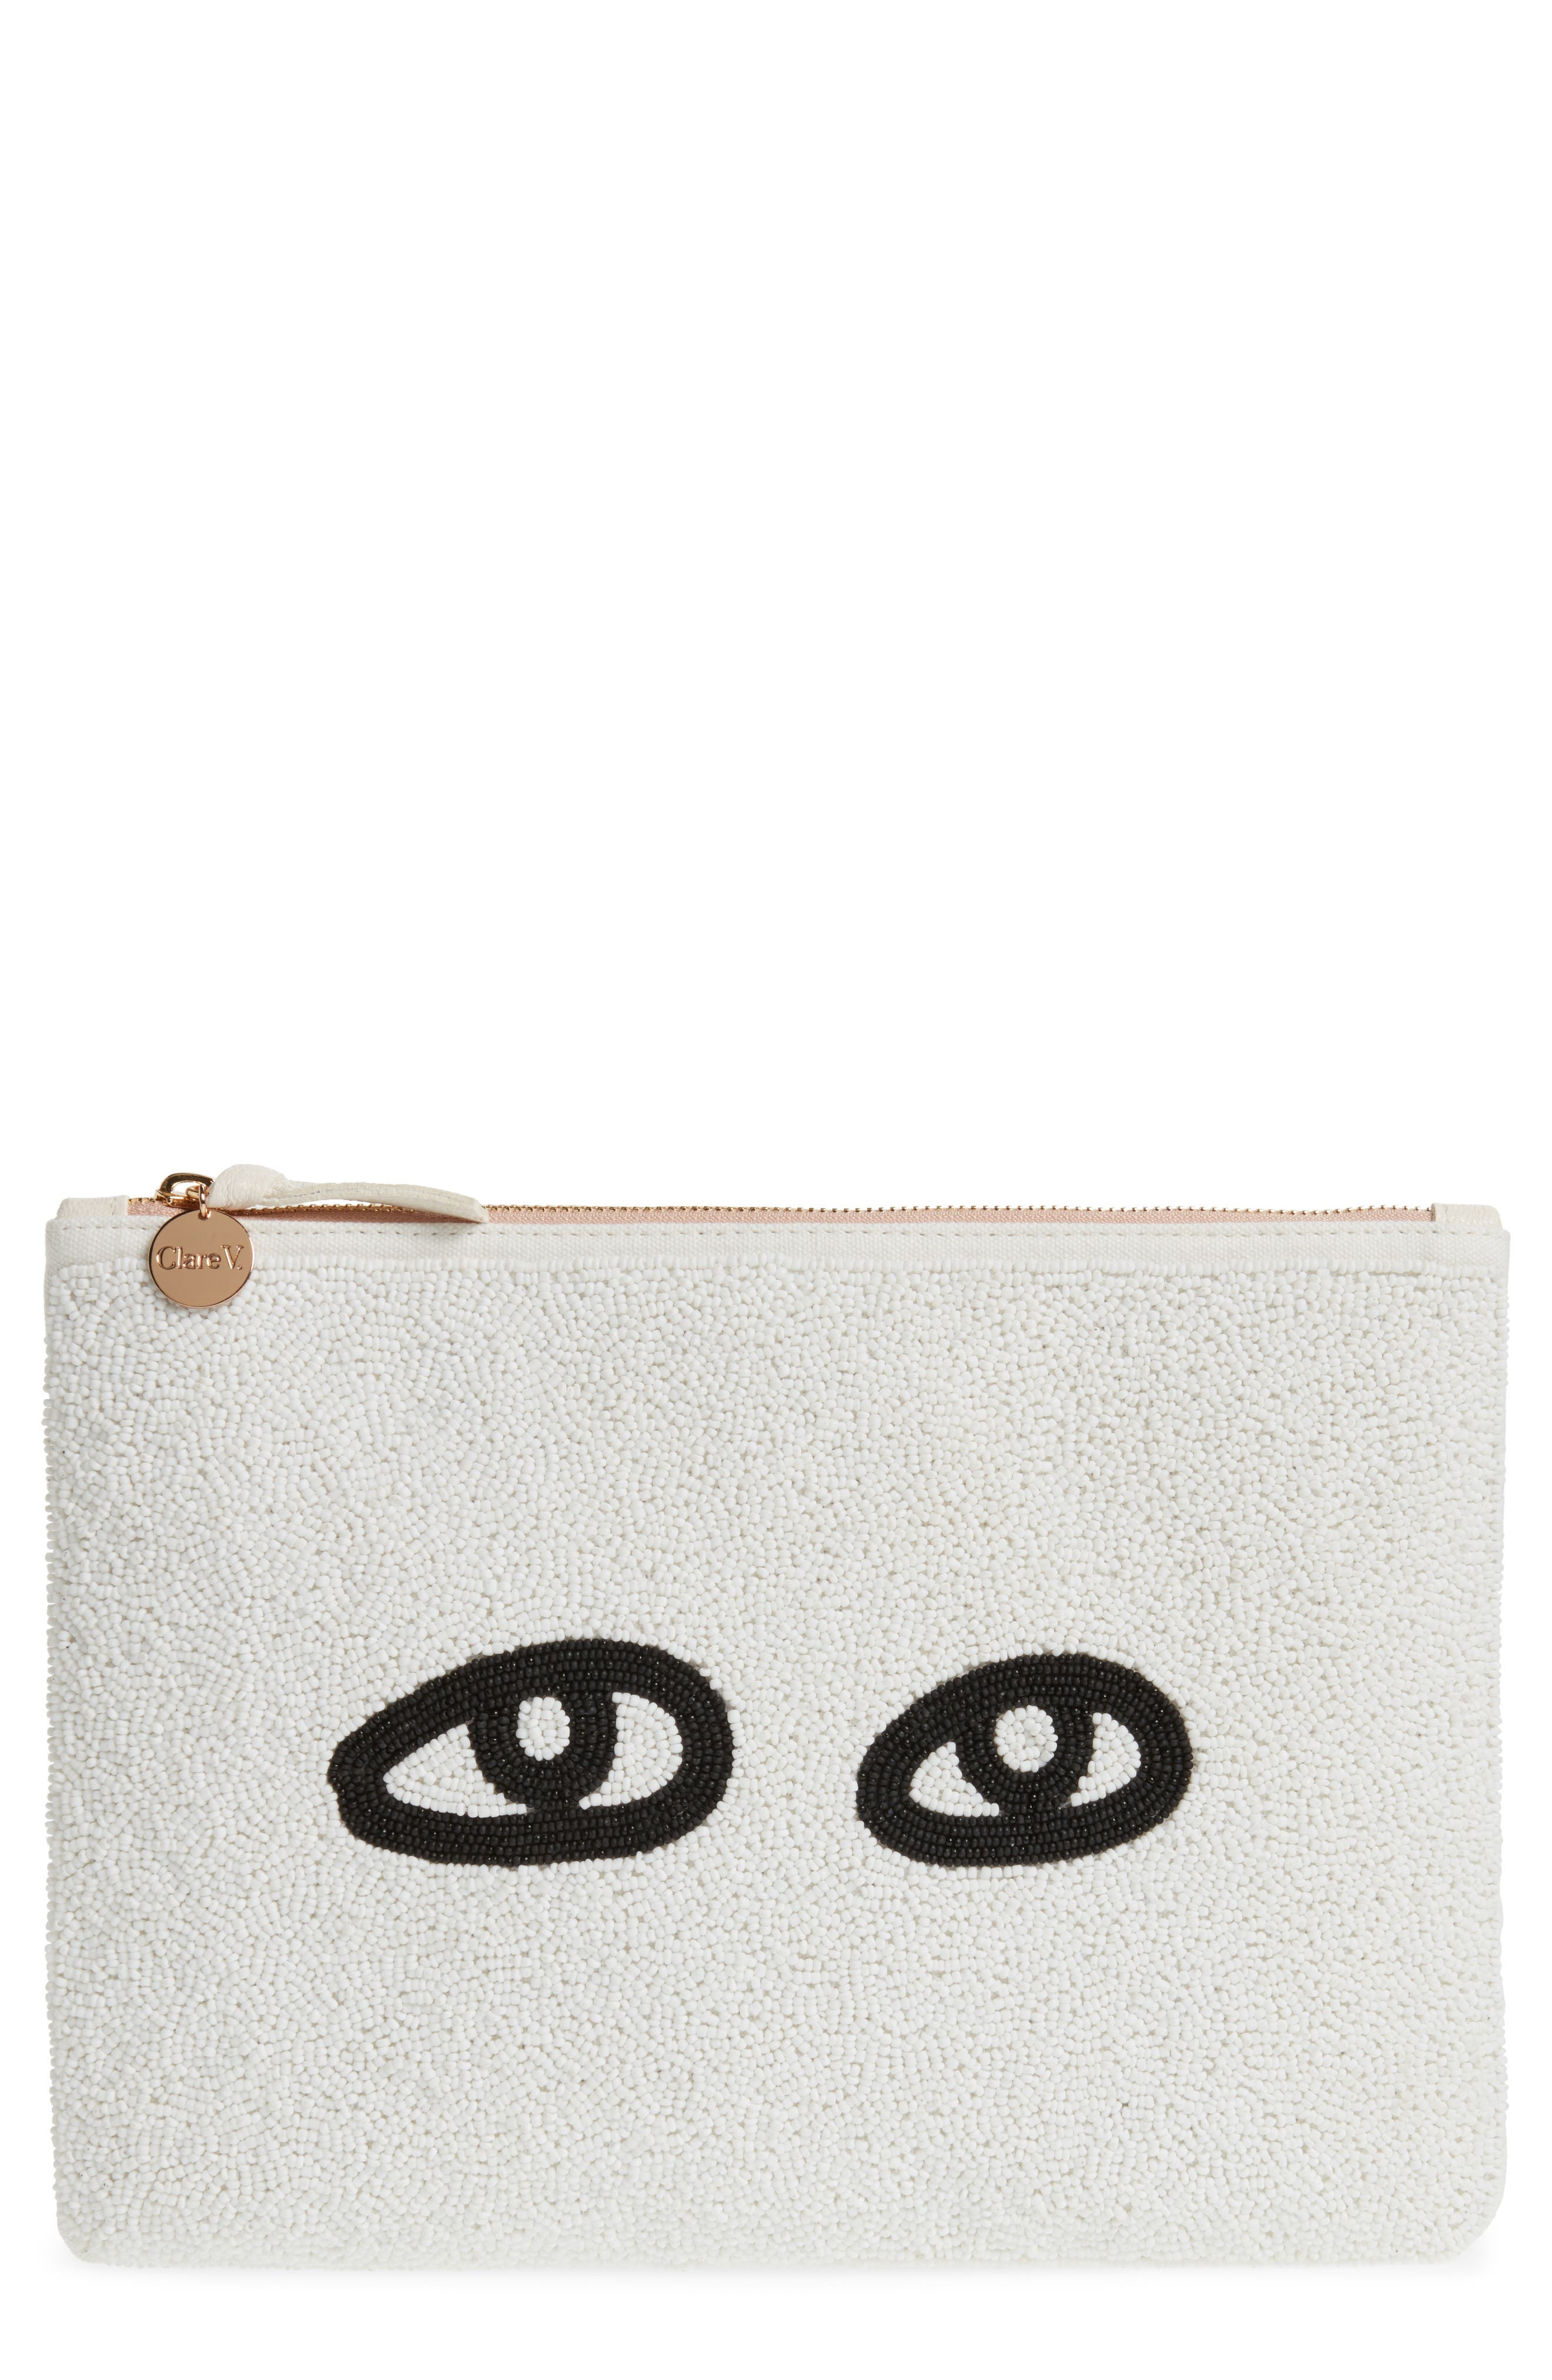 Eyes Printed Nappa Leather Clutch,                             Main thumbnail 1, color,                             Beaded White With Black Eyes